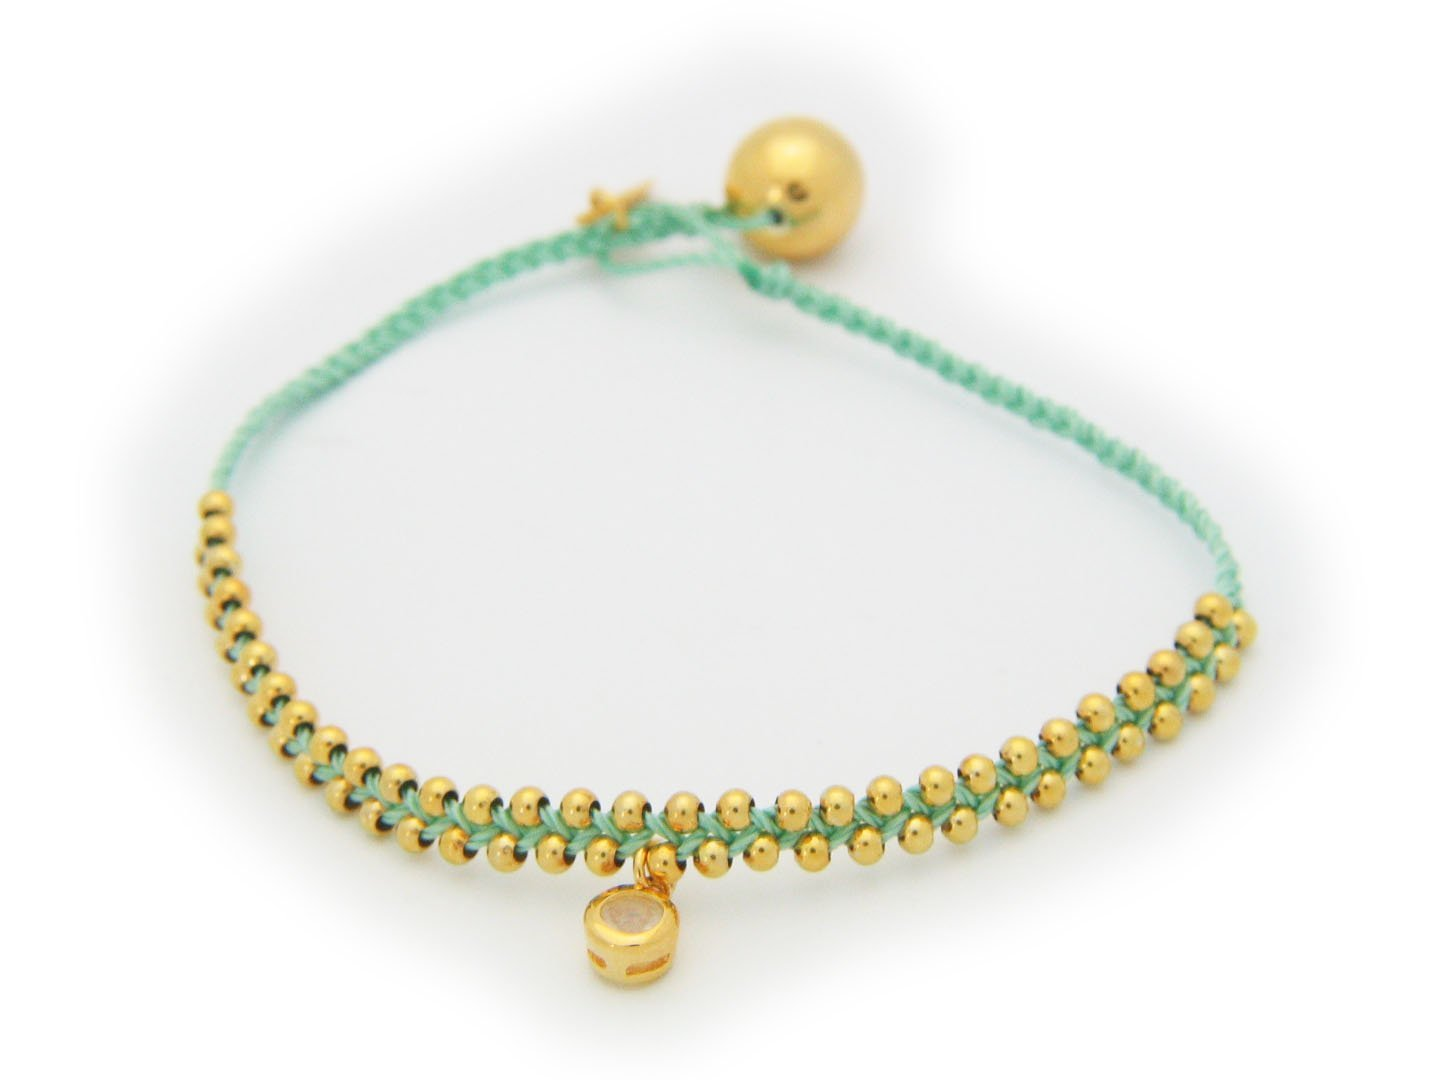 October Opal (Cz) Green Cord Bracelet in Vermeil,